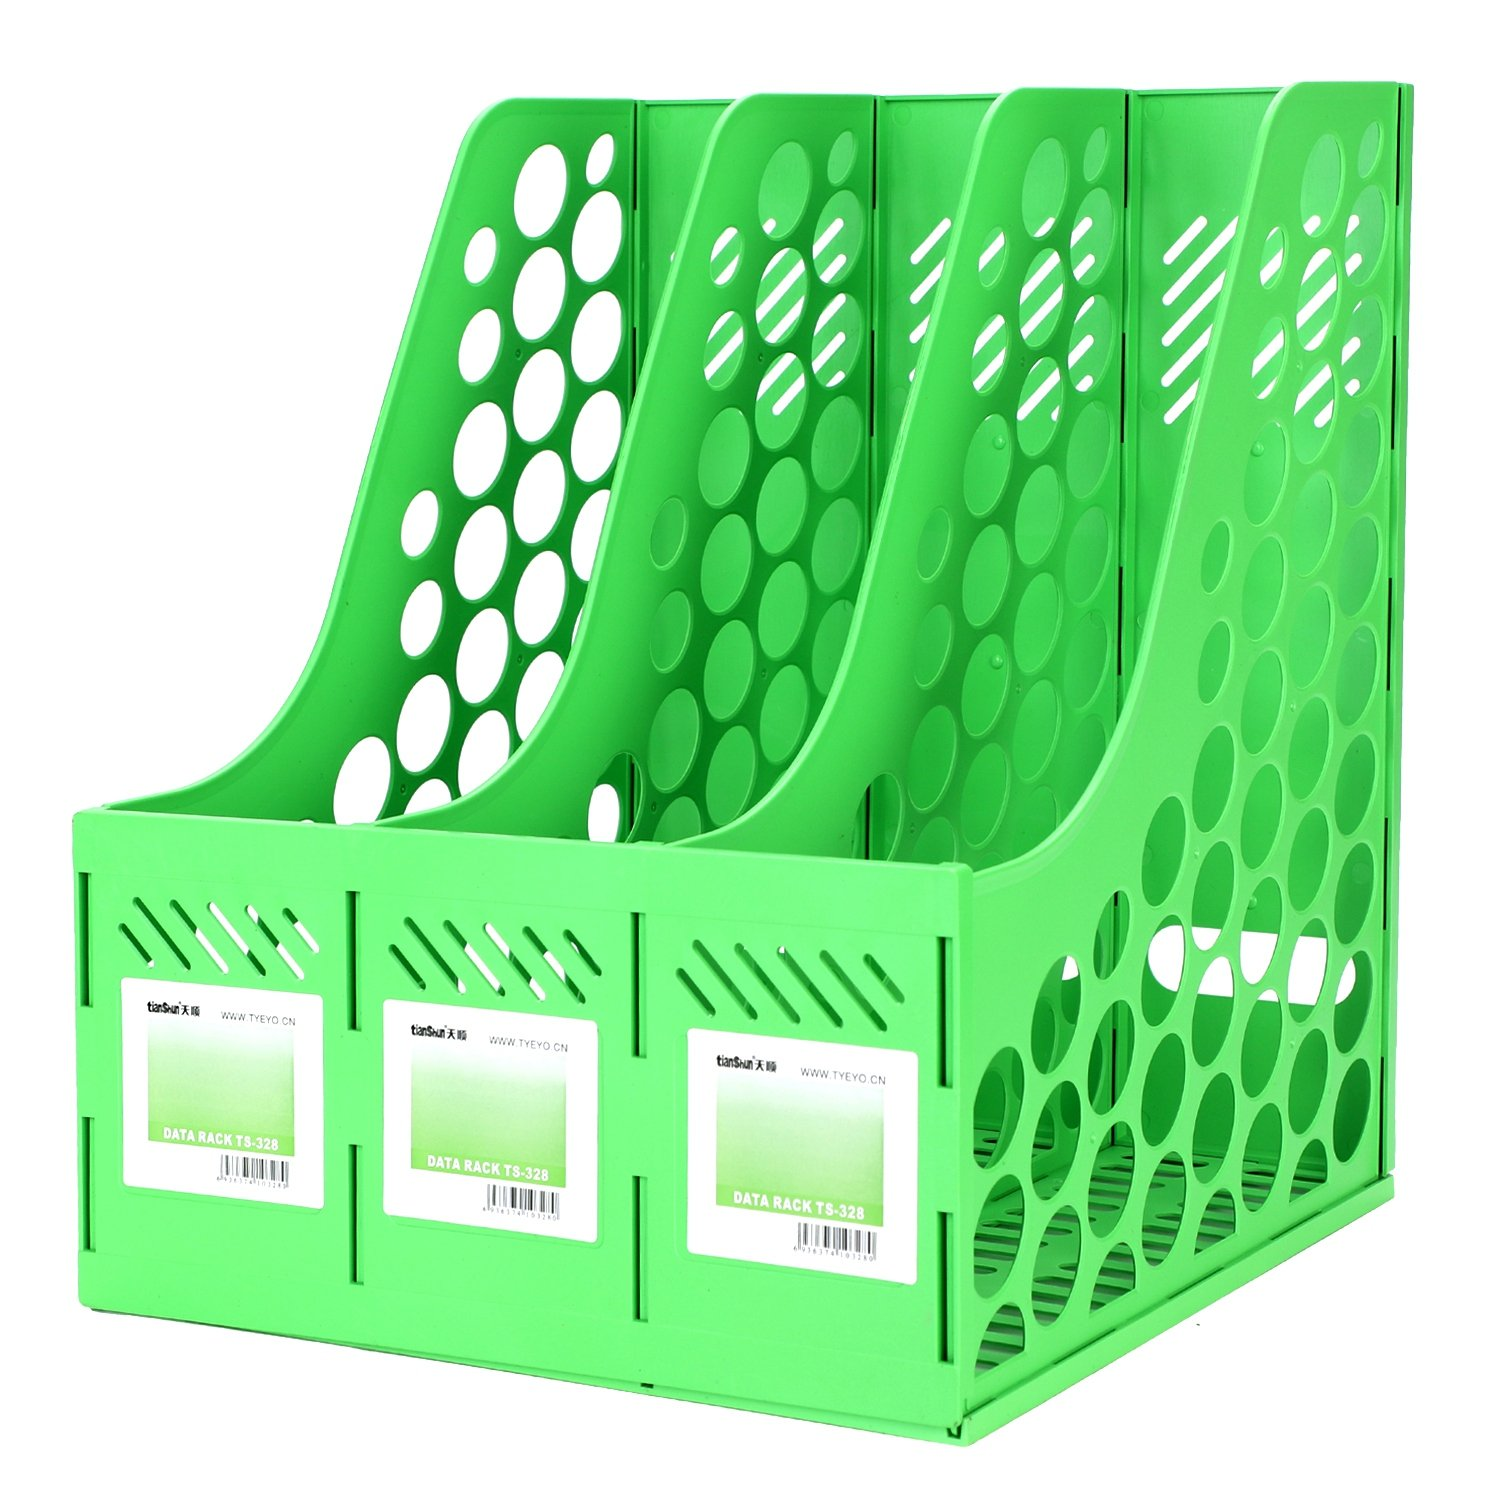 Desktop File Organizer Basket, Office/Home Portable Detachable Vertical Upright 3 Compartment Storage Bins Crate Folder Holder for Supplies